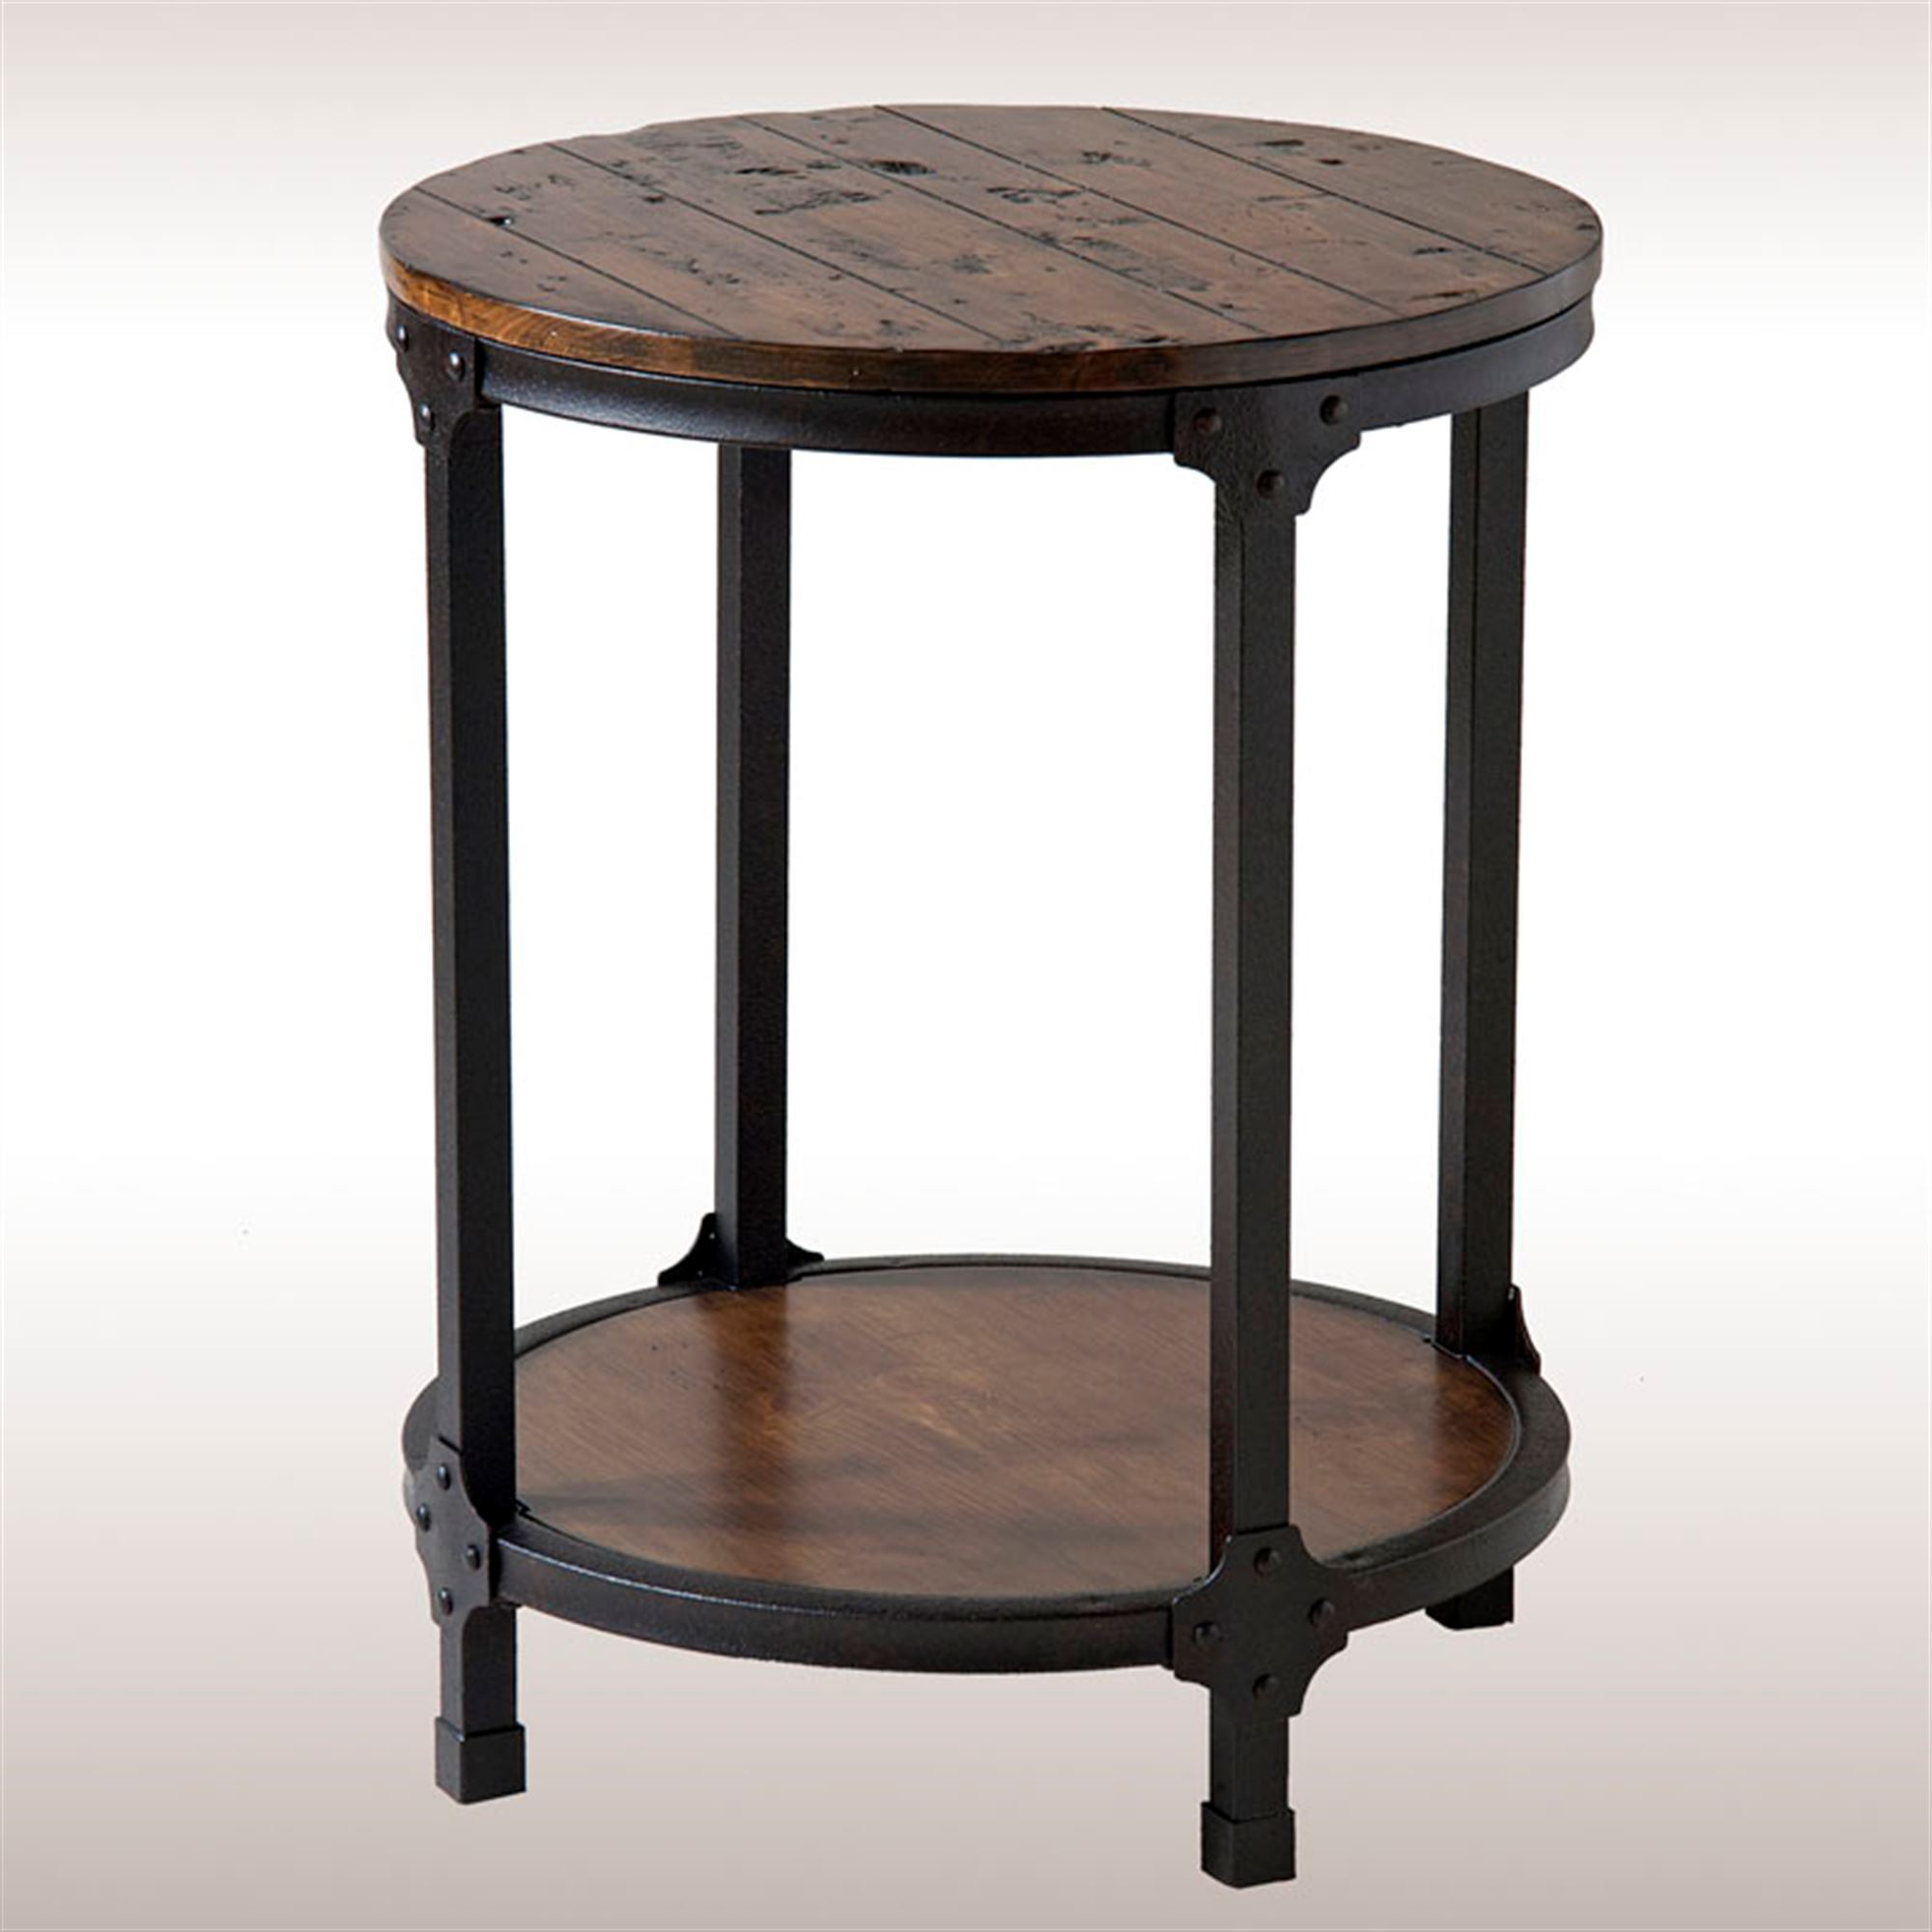 macon rustic round accent table white touch zoom homesense tables zinc family room end laminate door trim retro patio furniture red metal side pink black marble corner oversized